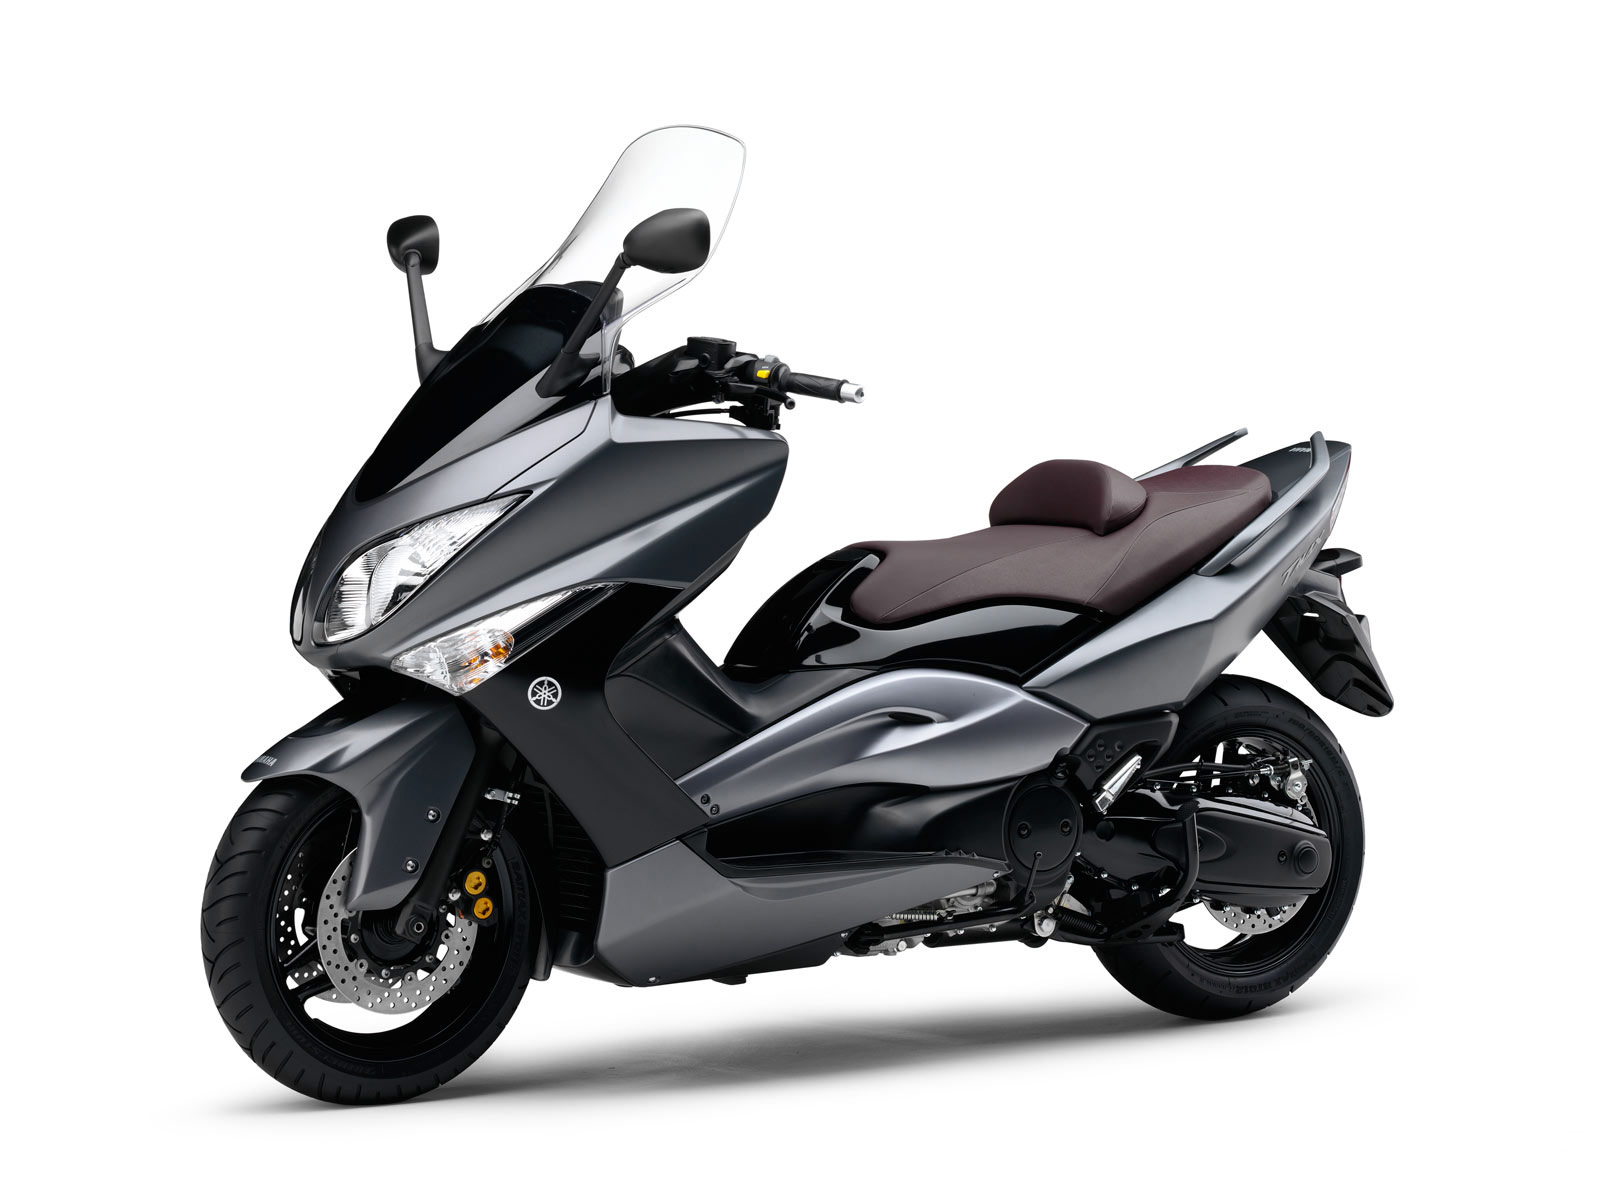 2008 YAMAHA Tmax Scooter pictures  insurance  specs